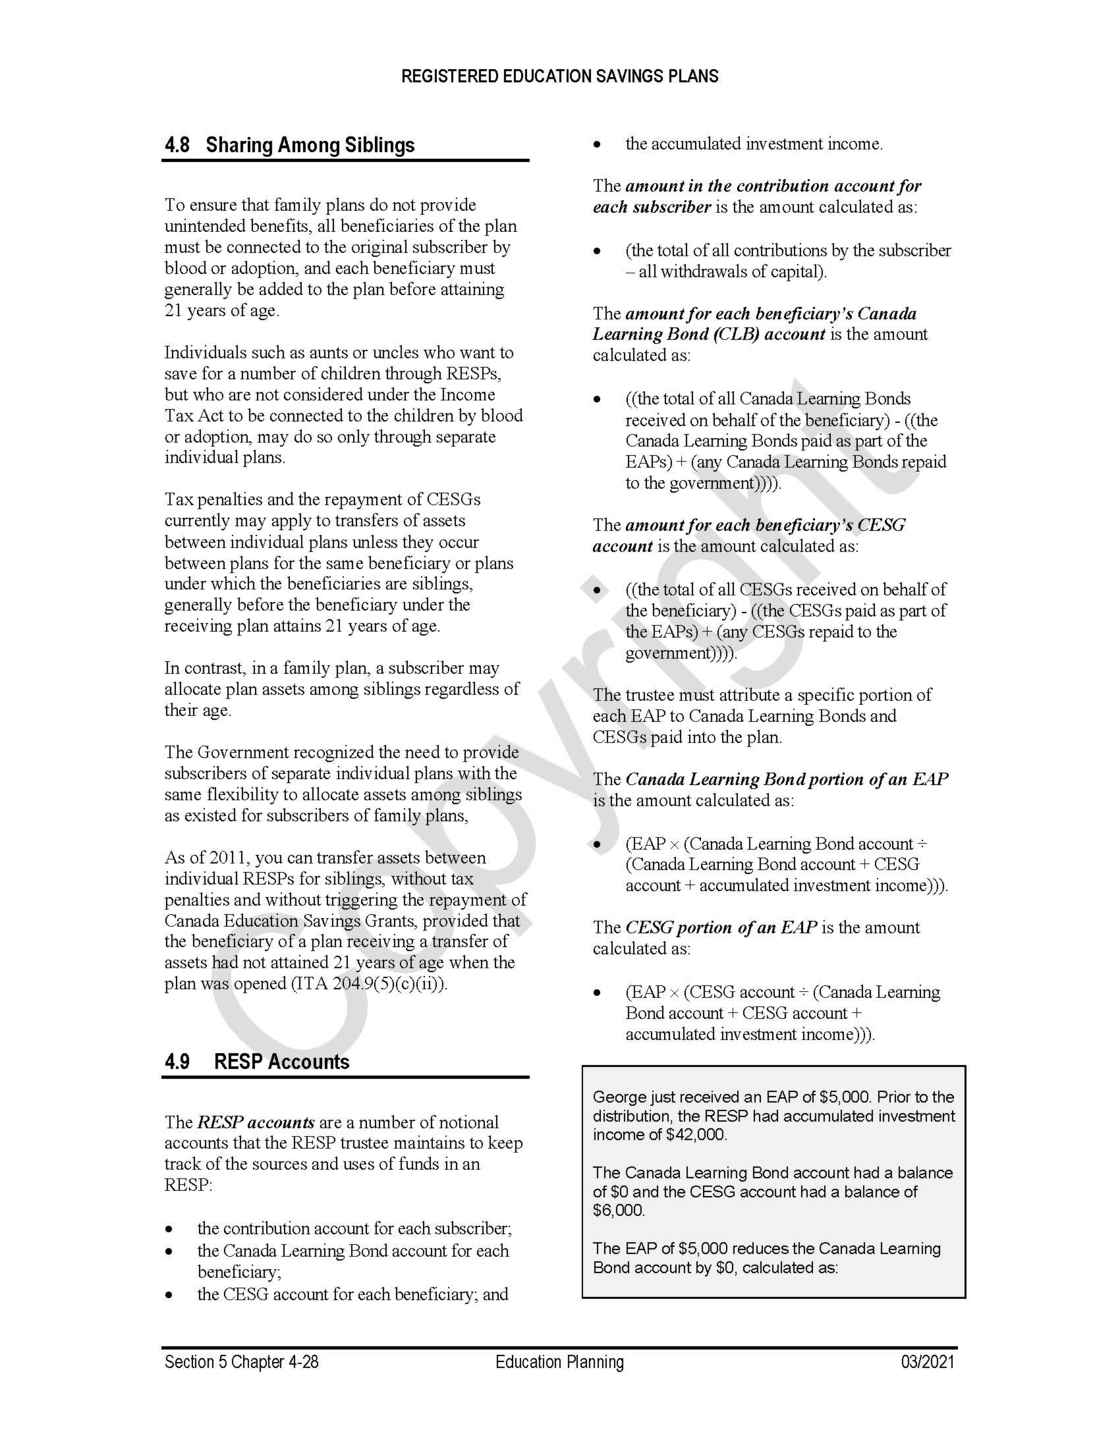 PFP 5-04 RESPs 104 Page_28